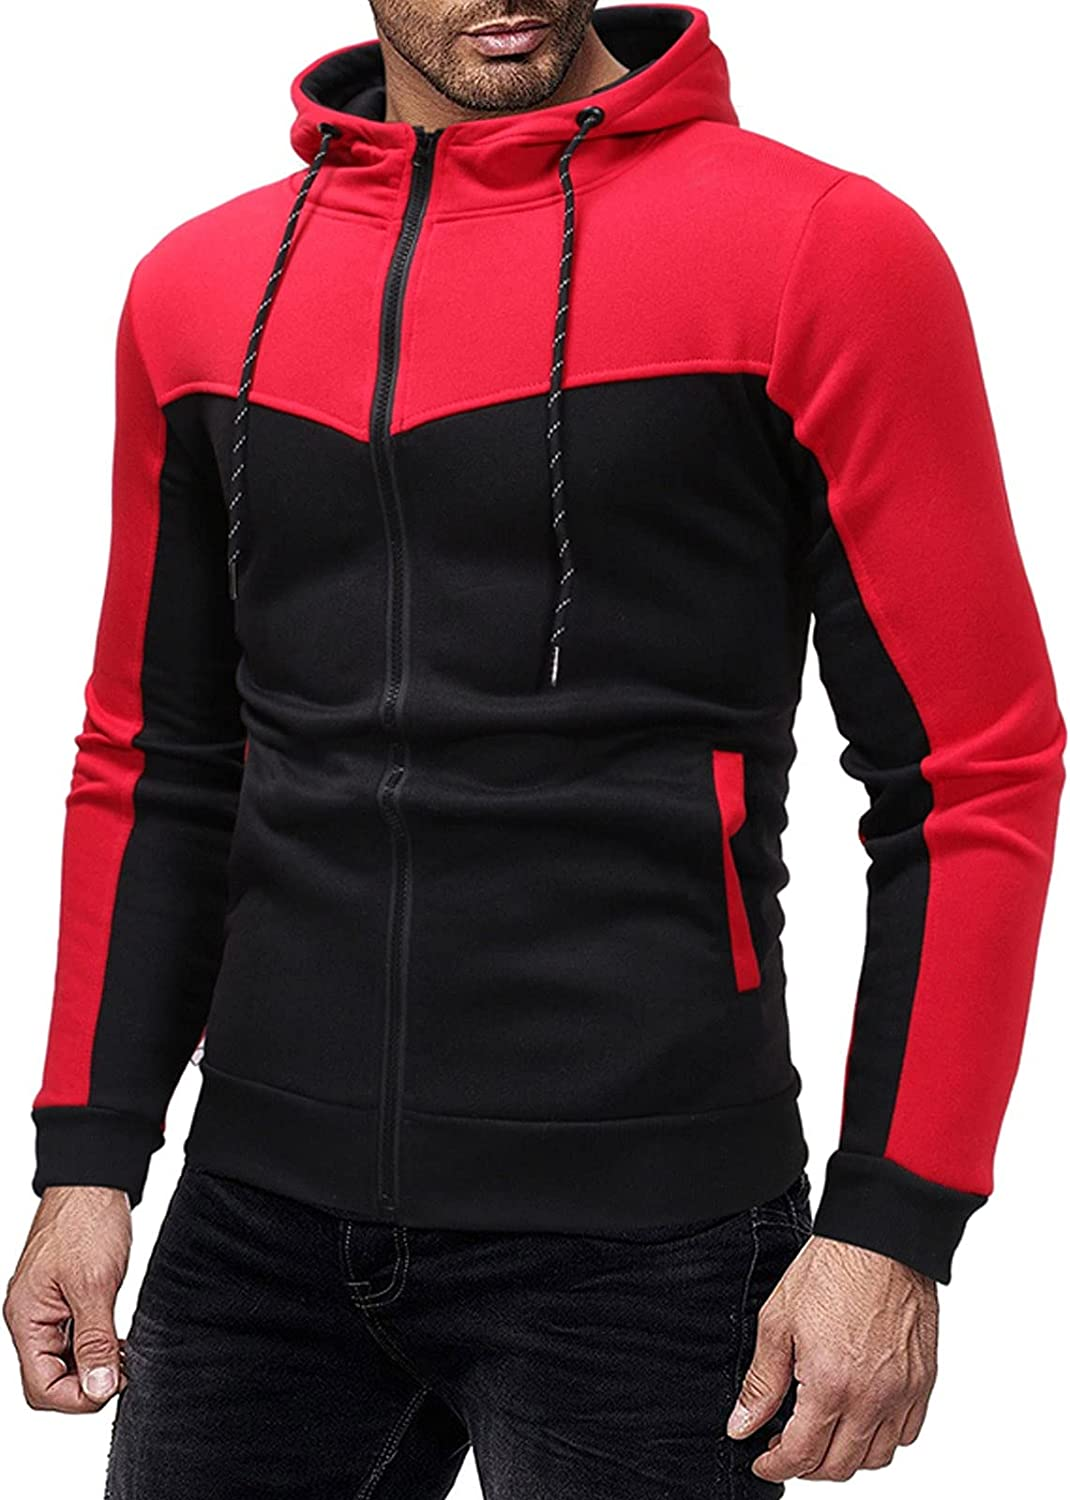 XXBR Patchwork Hoodies for Mens, Fall Fashion Zipper Color Block Drawstring Hooded Sweatshirts Slim Fit Casual Jackets